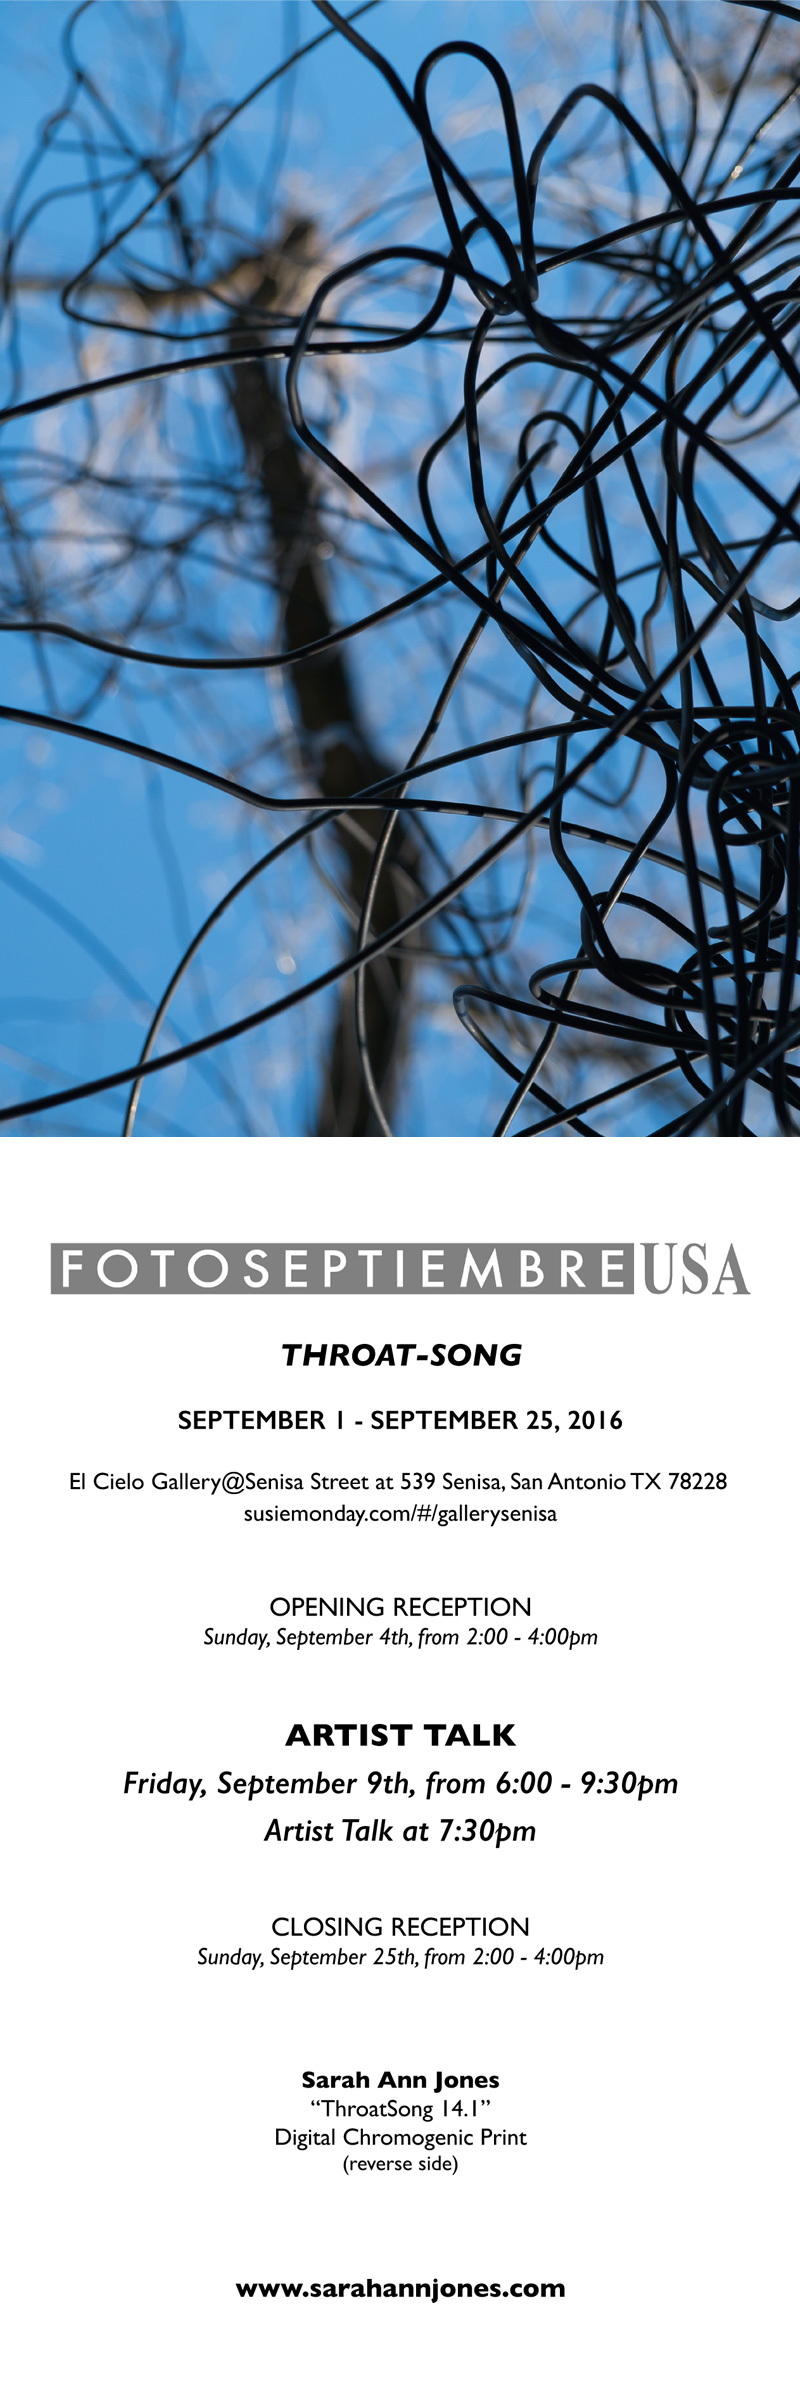 2016-FOTOSEPTIEMBRE-USA_Press-Archives_Sarah-Ann-Jones_Throat-Song-Exhibition_Promo-Card